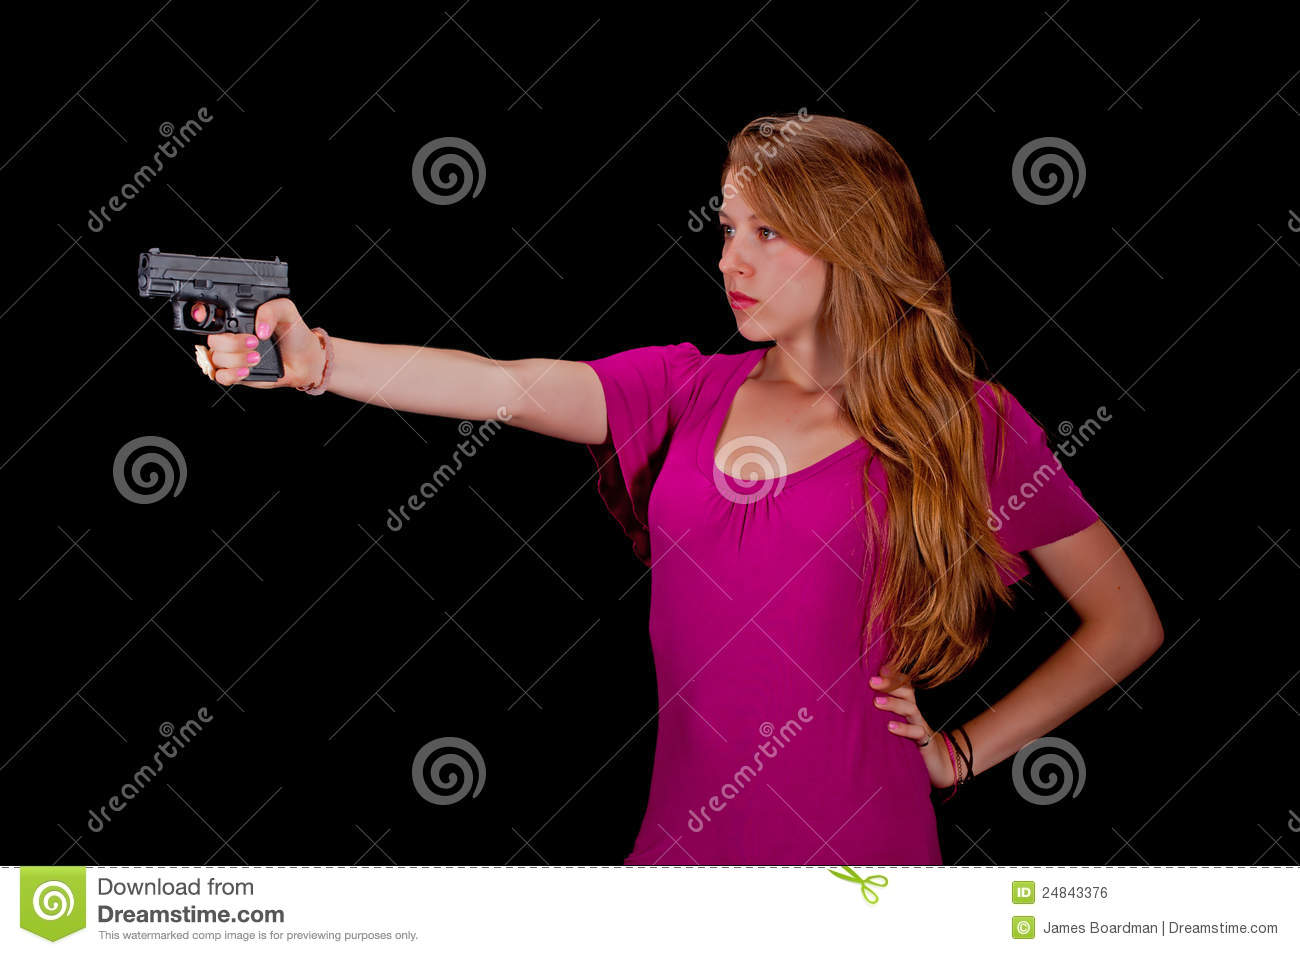 how to carry a gun while wearing a dress